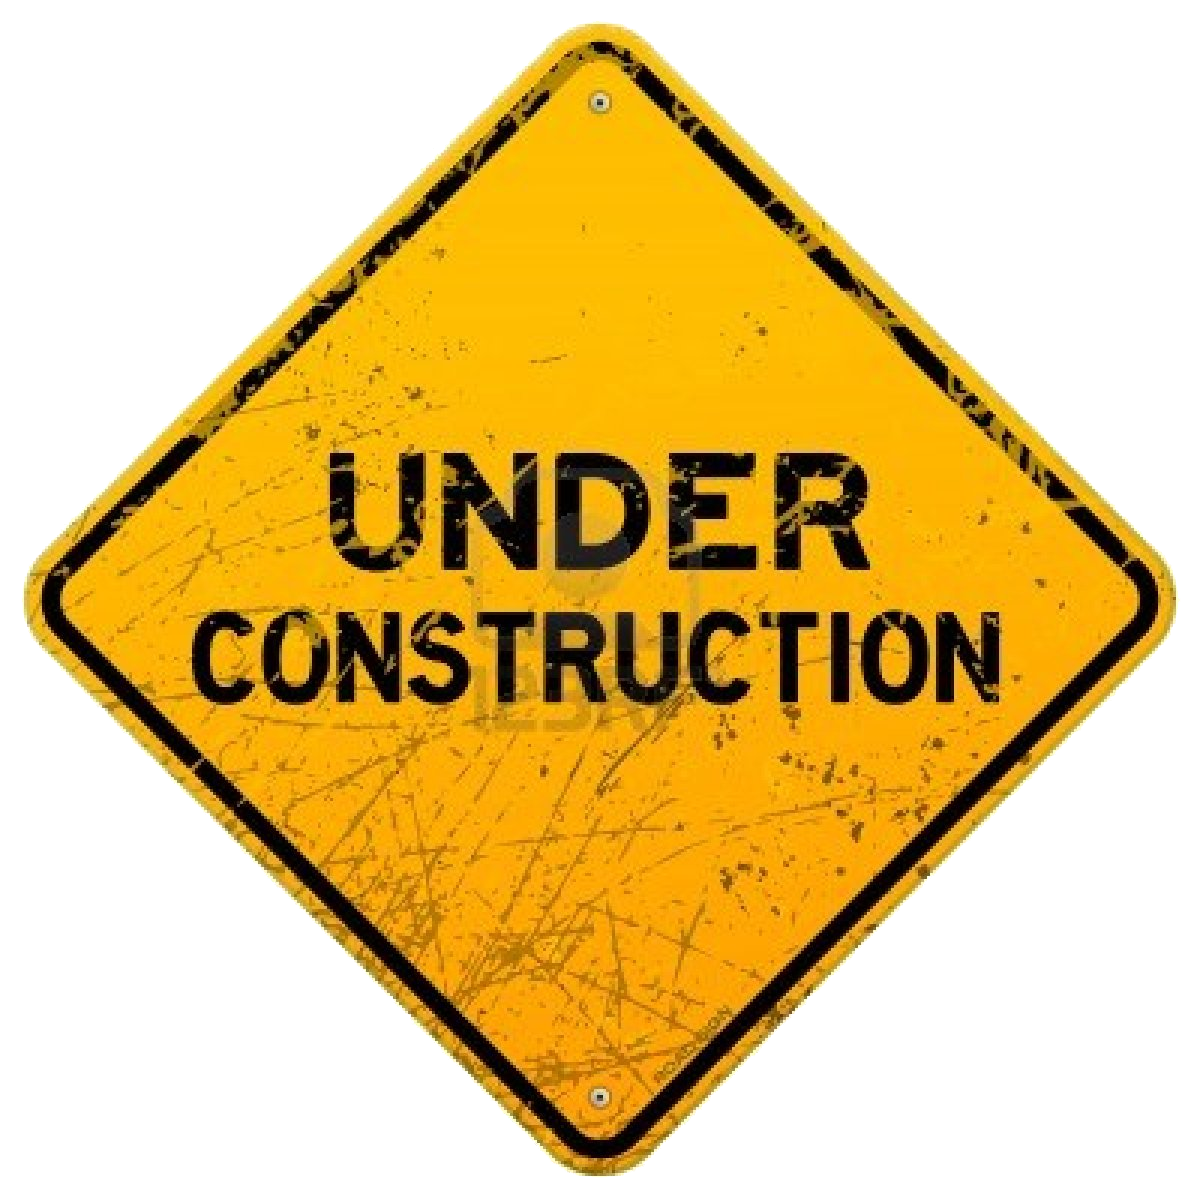 Under Construction PNG HD Free - 148319